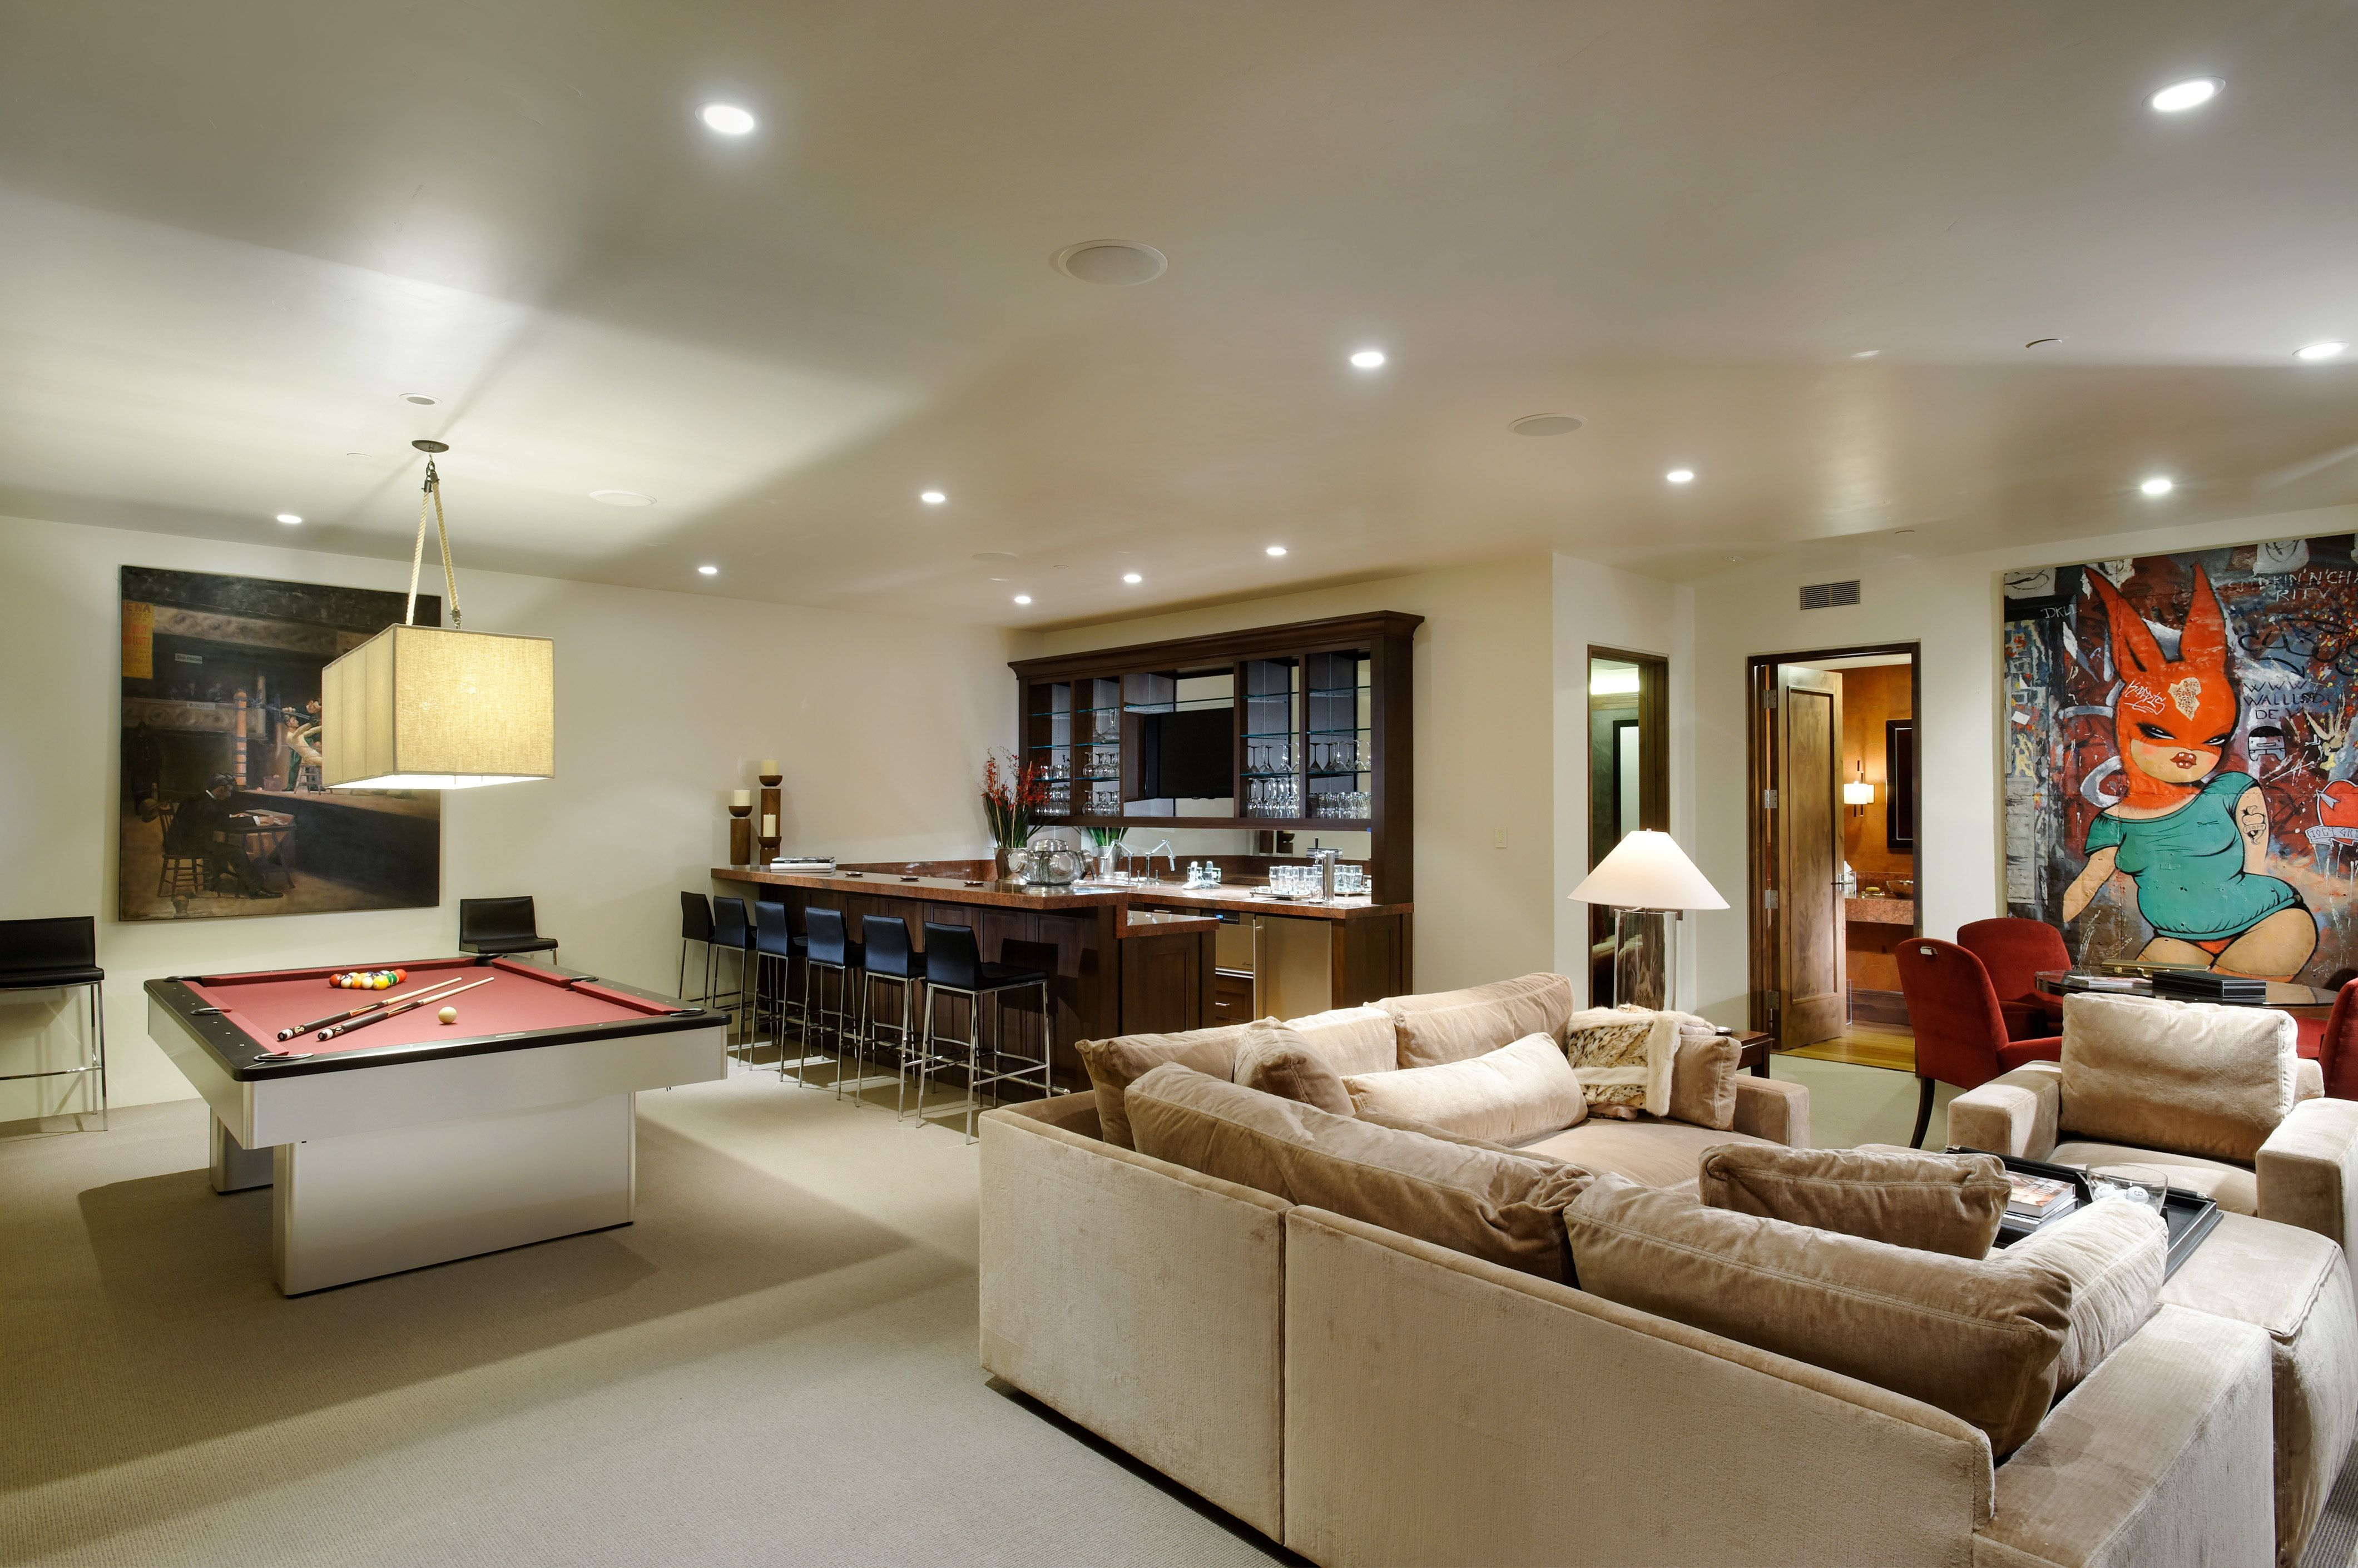 Game Room With Bar Pool Table Poker Table And Cozy Sectional Seating Pool Table Room Game Room Cool Rooms